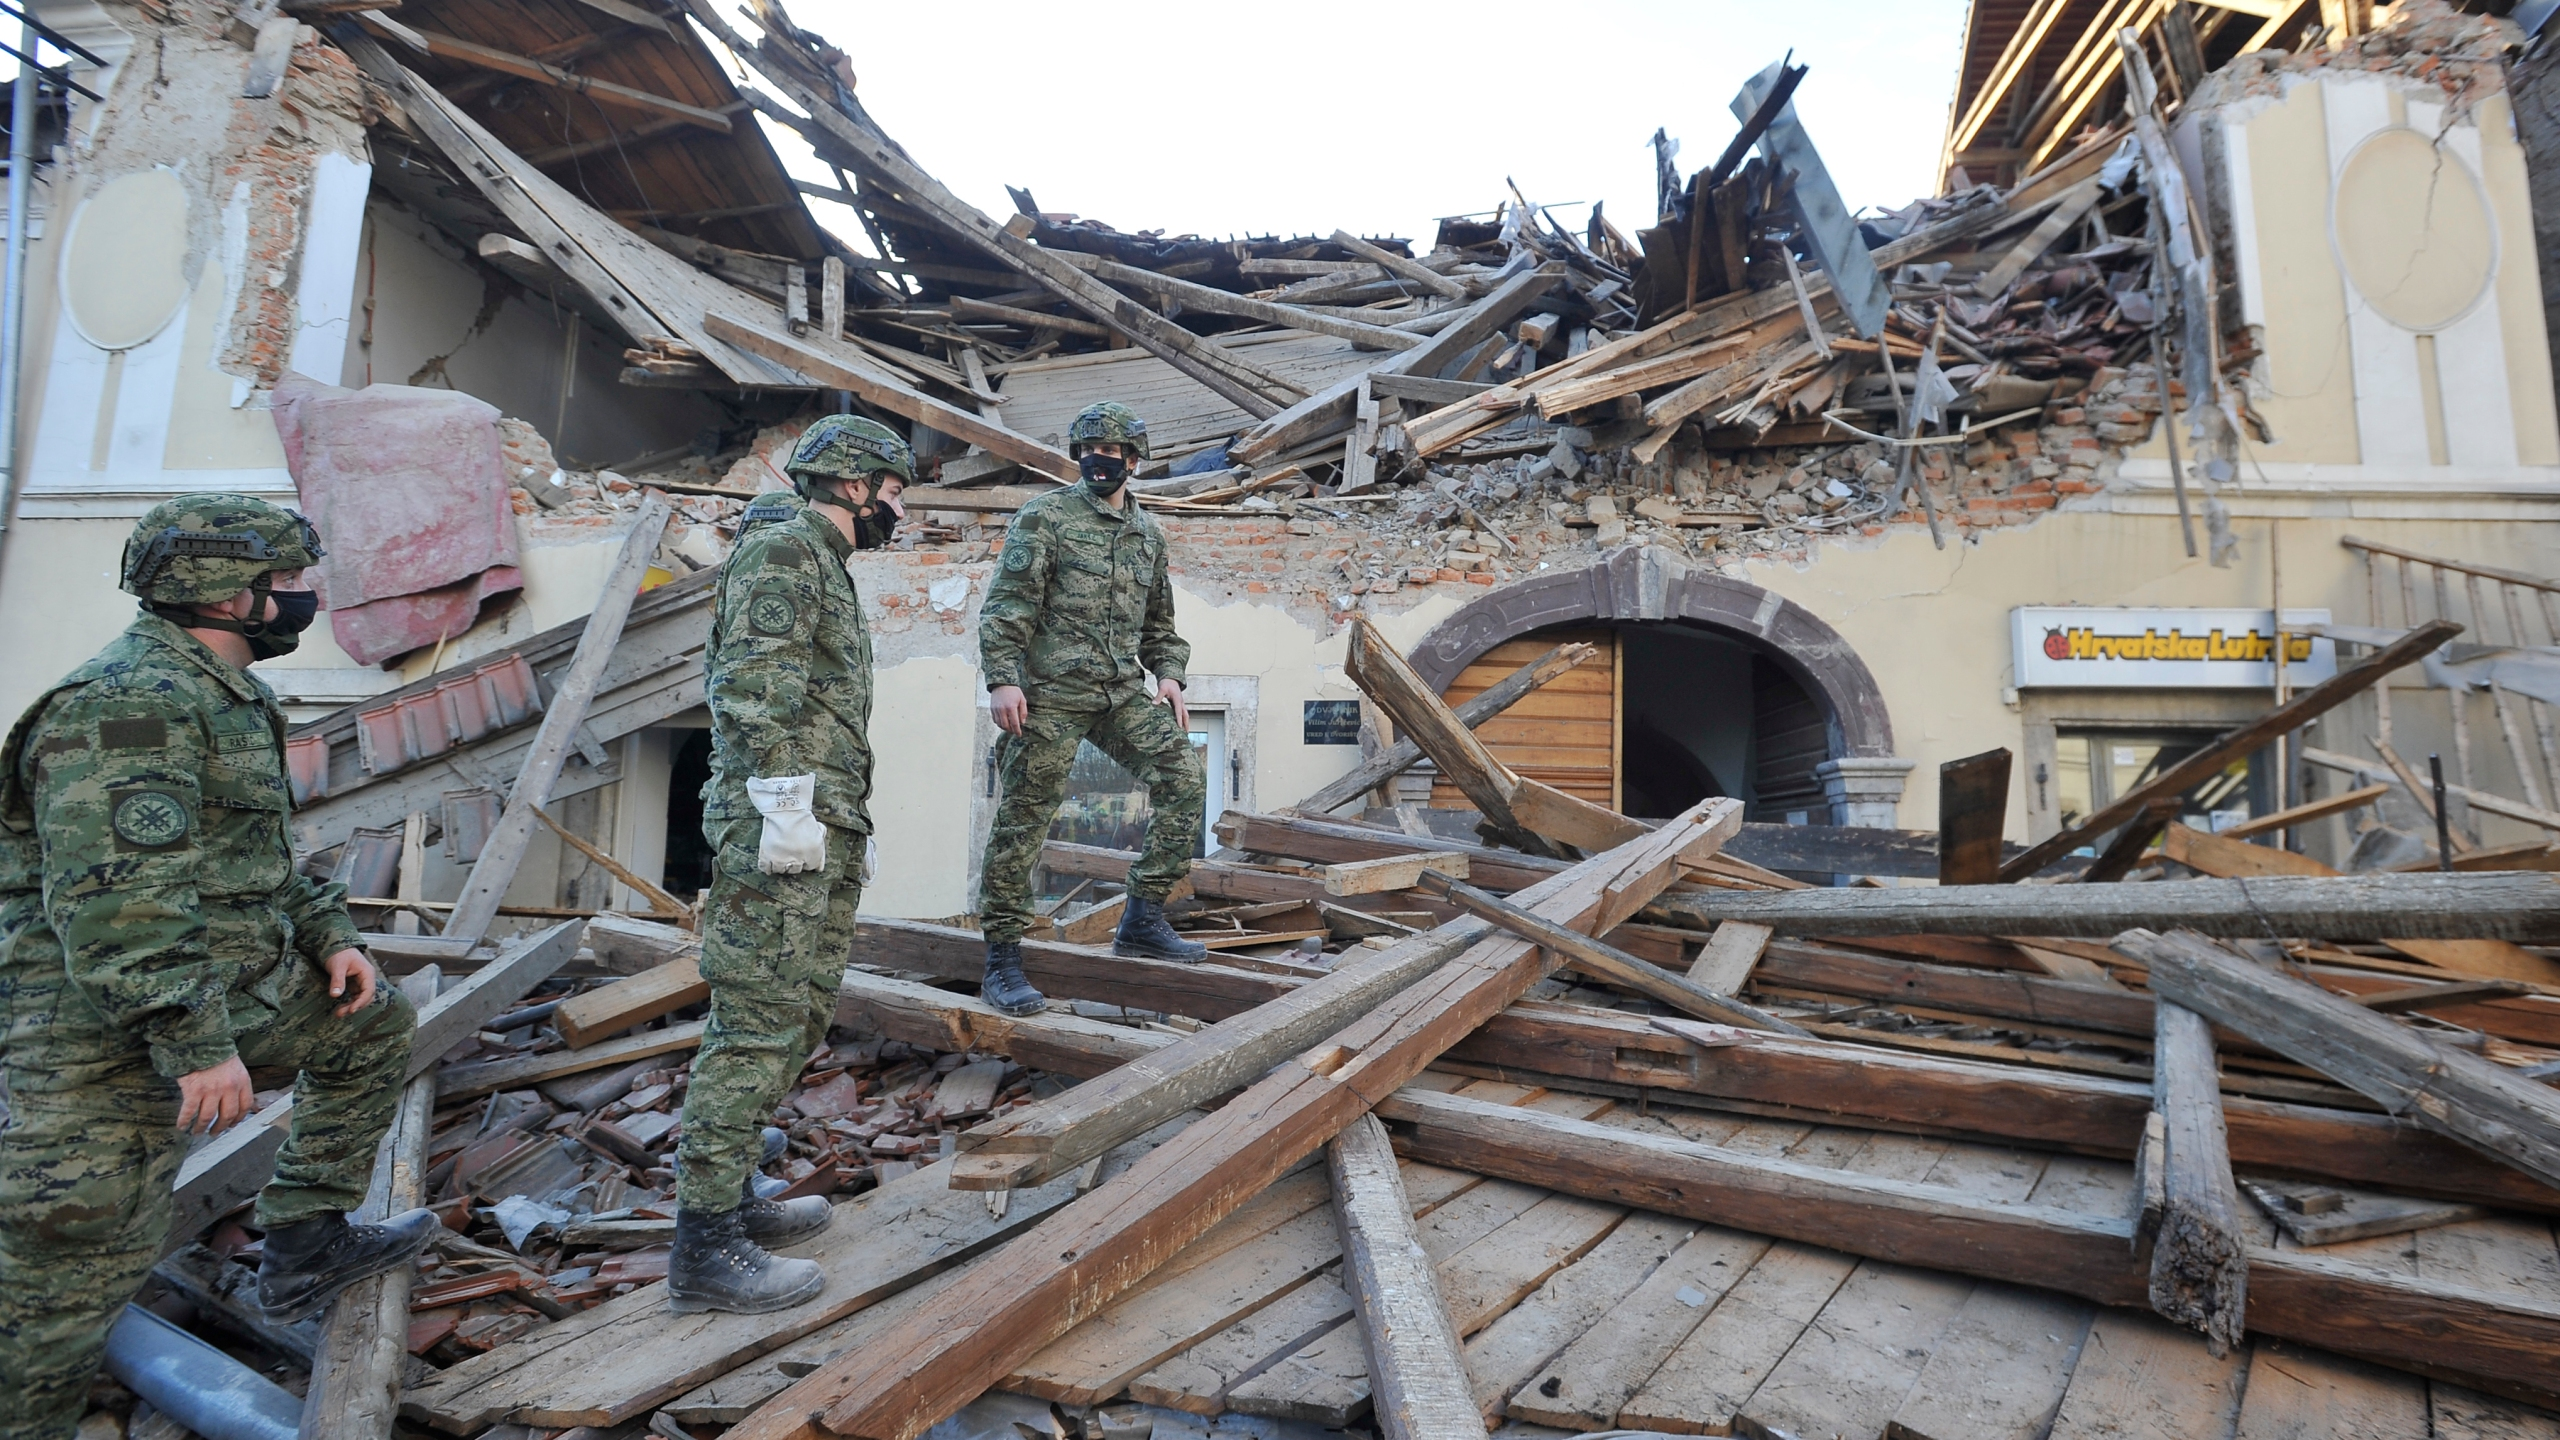 Soldiers inspect the remains of a building damaged in an earthquake, in Petrinja, Croatia, Tuesday, Dec. 29, 2020. A strong earthquake has hit central Croatia and caused major damage and at least one death in a town southeast of the capital. (AP Photo)